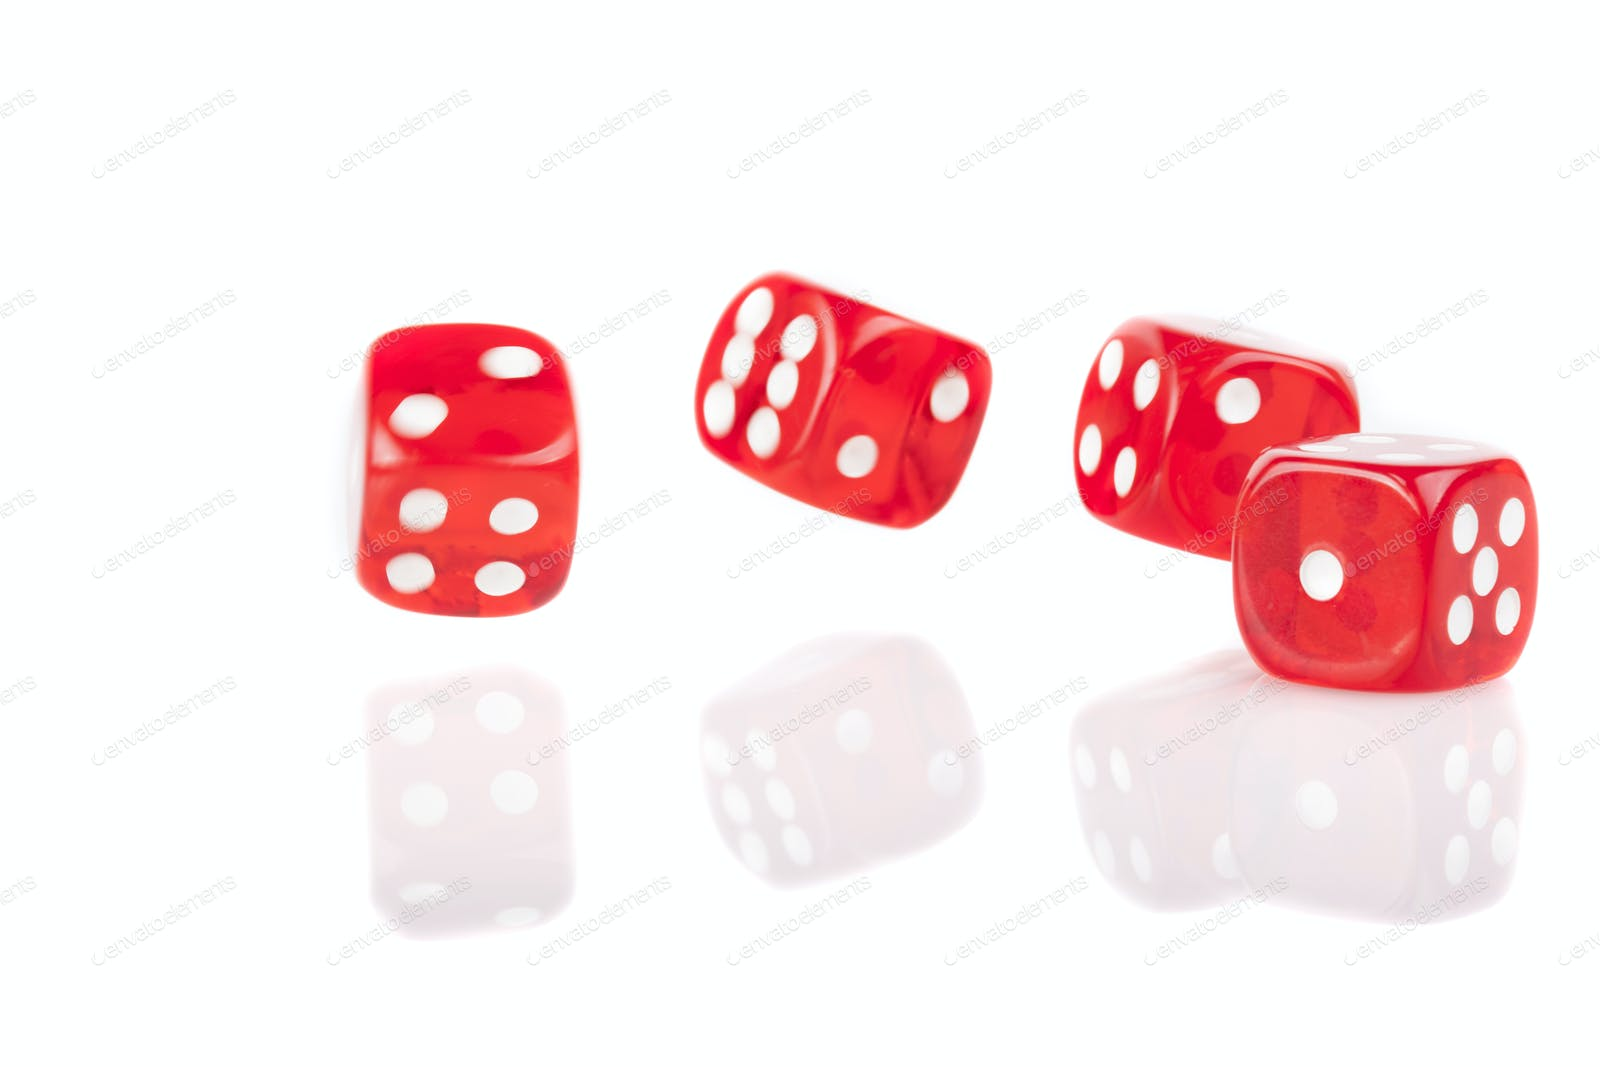 Red Lucky Dices photo by orcearo on Envato Elements